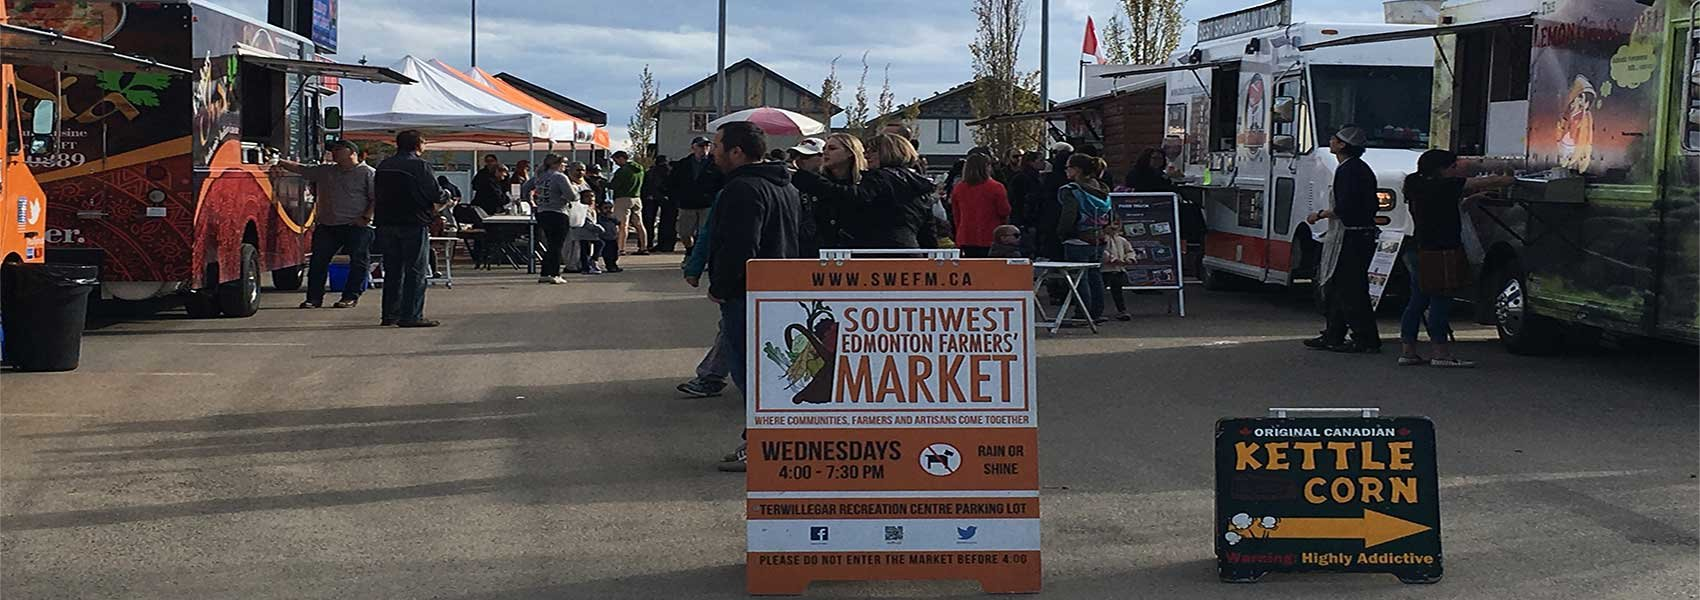 Southwest Farmers Market Entrance